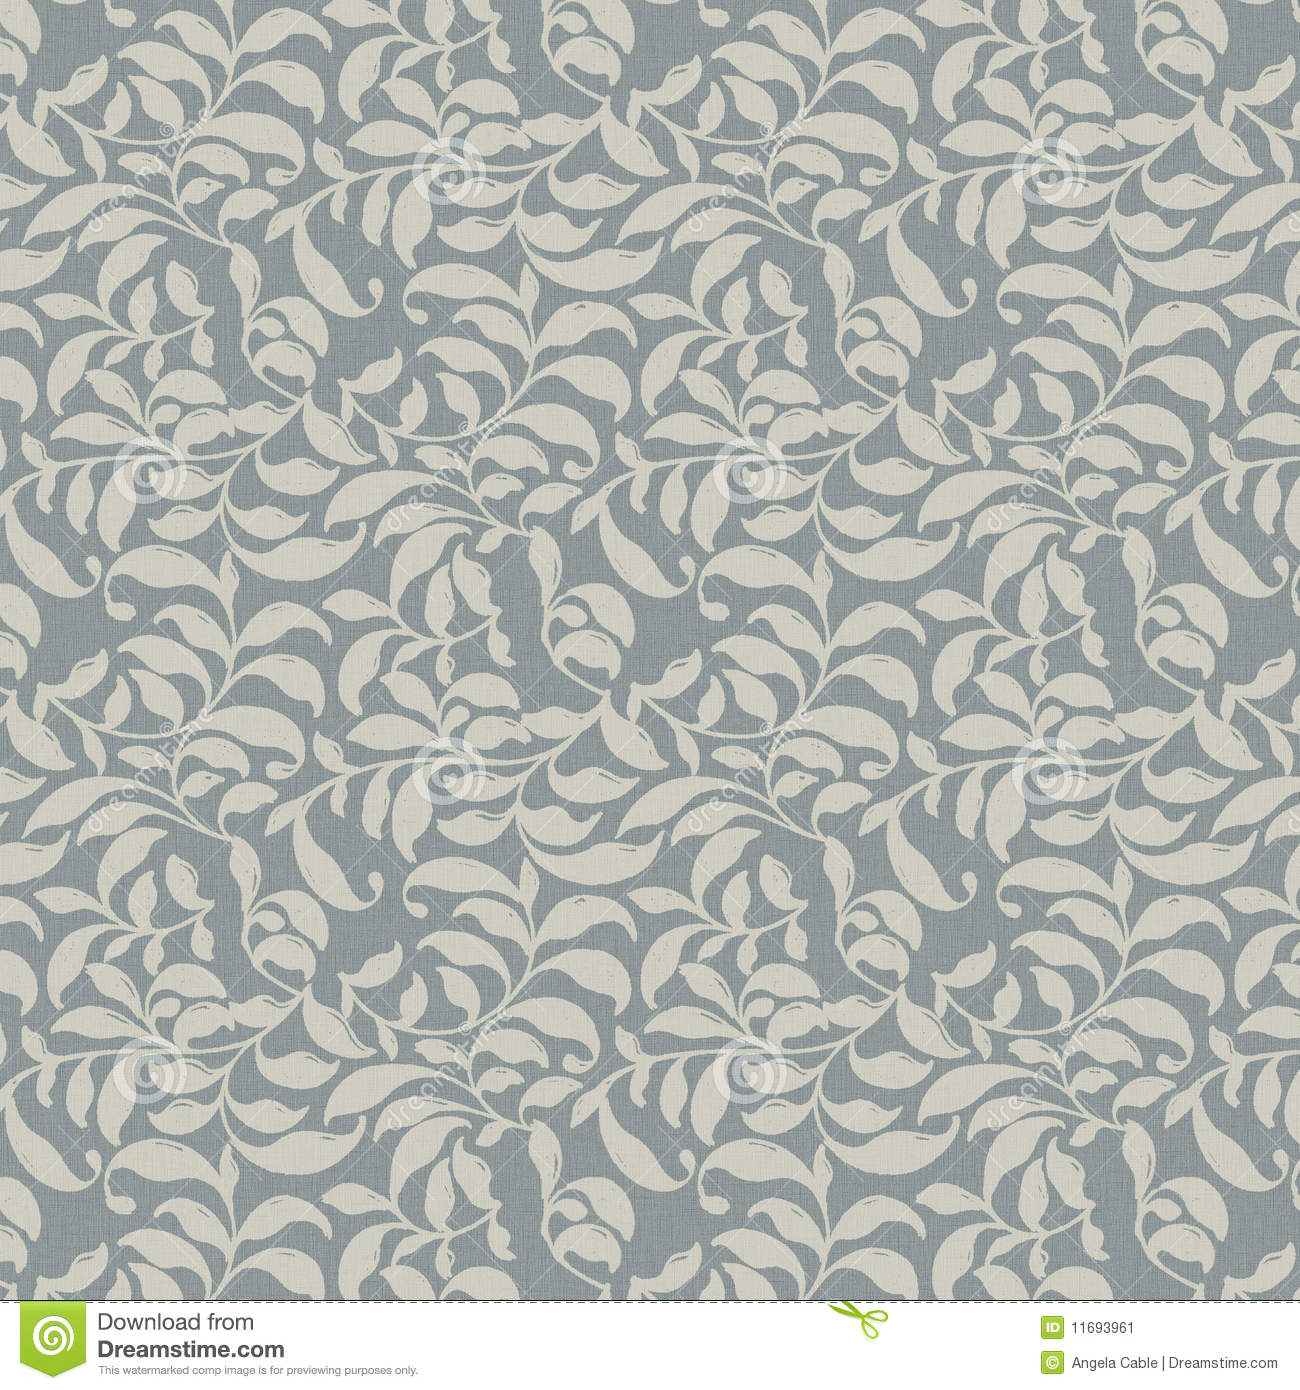 Background Ivory Leaves Allover